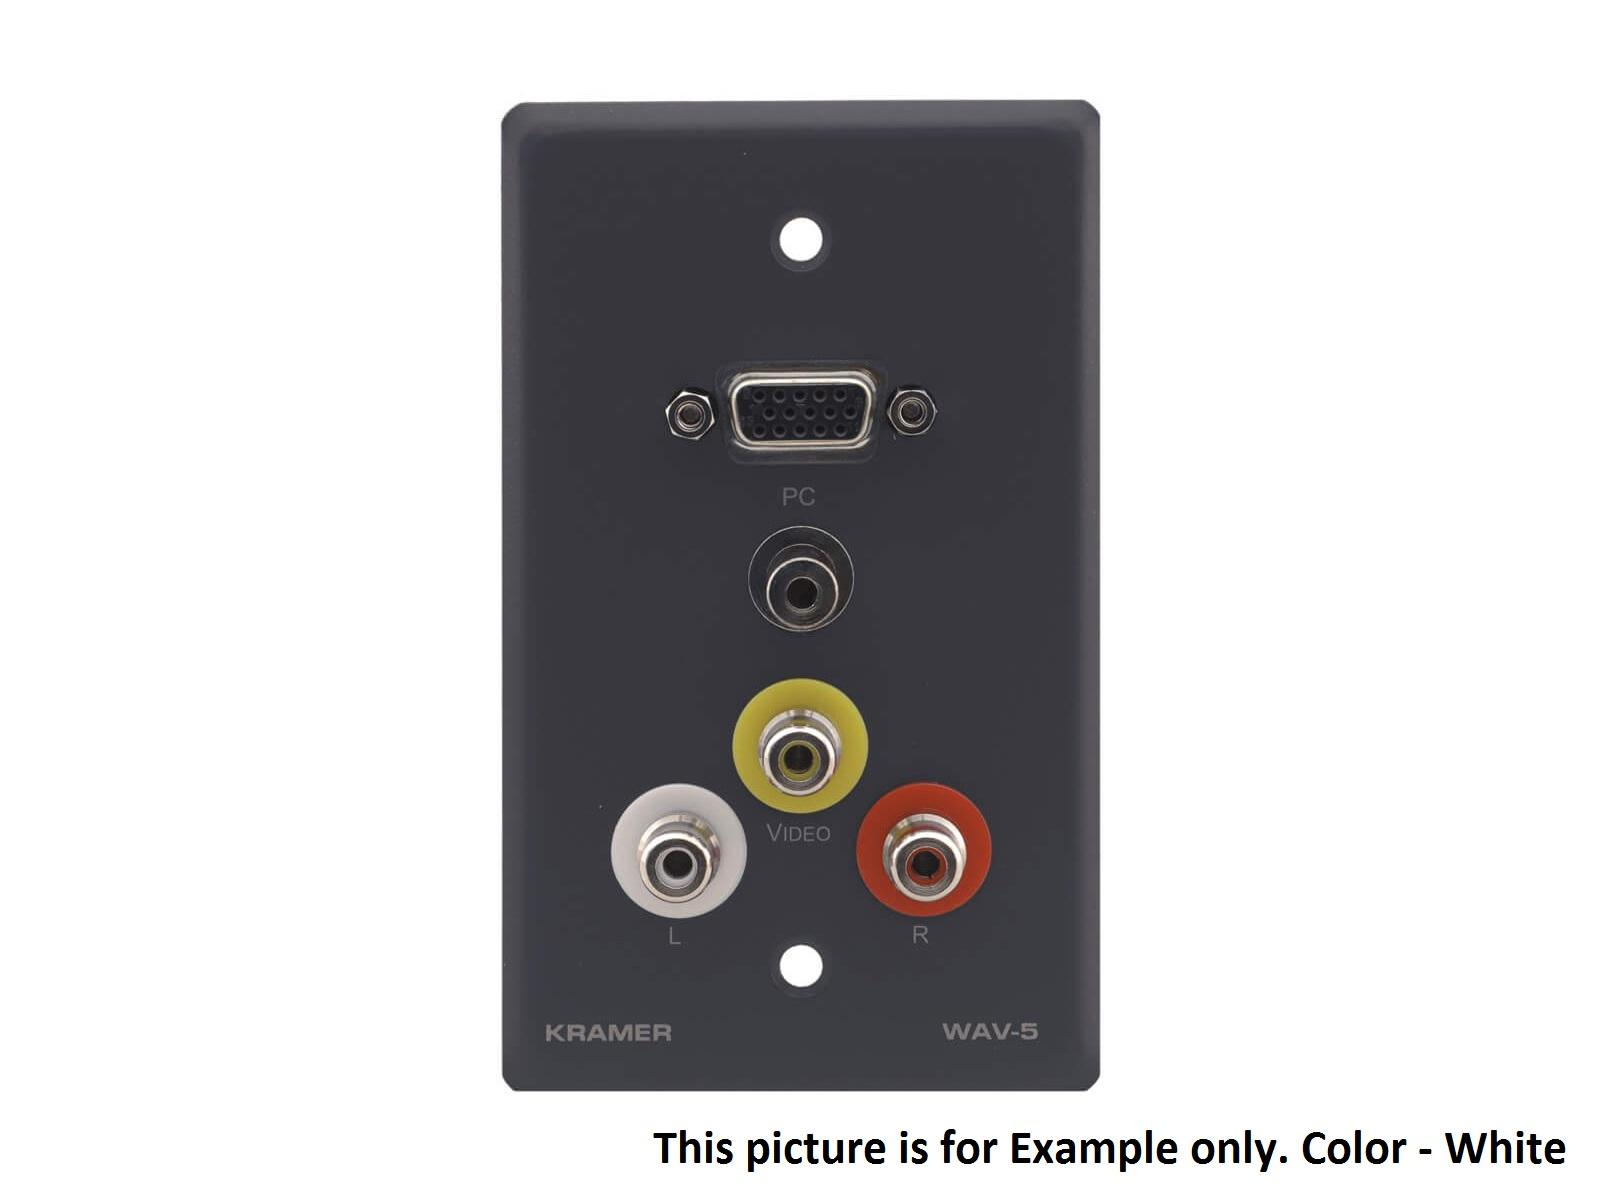 Kramer WAV-5(W) 15-Pin HD F/ 3.5mm F and 3 RCA F Pass Through Wall Plate/White